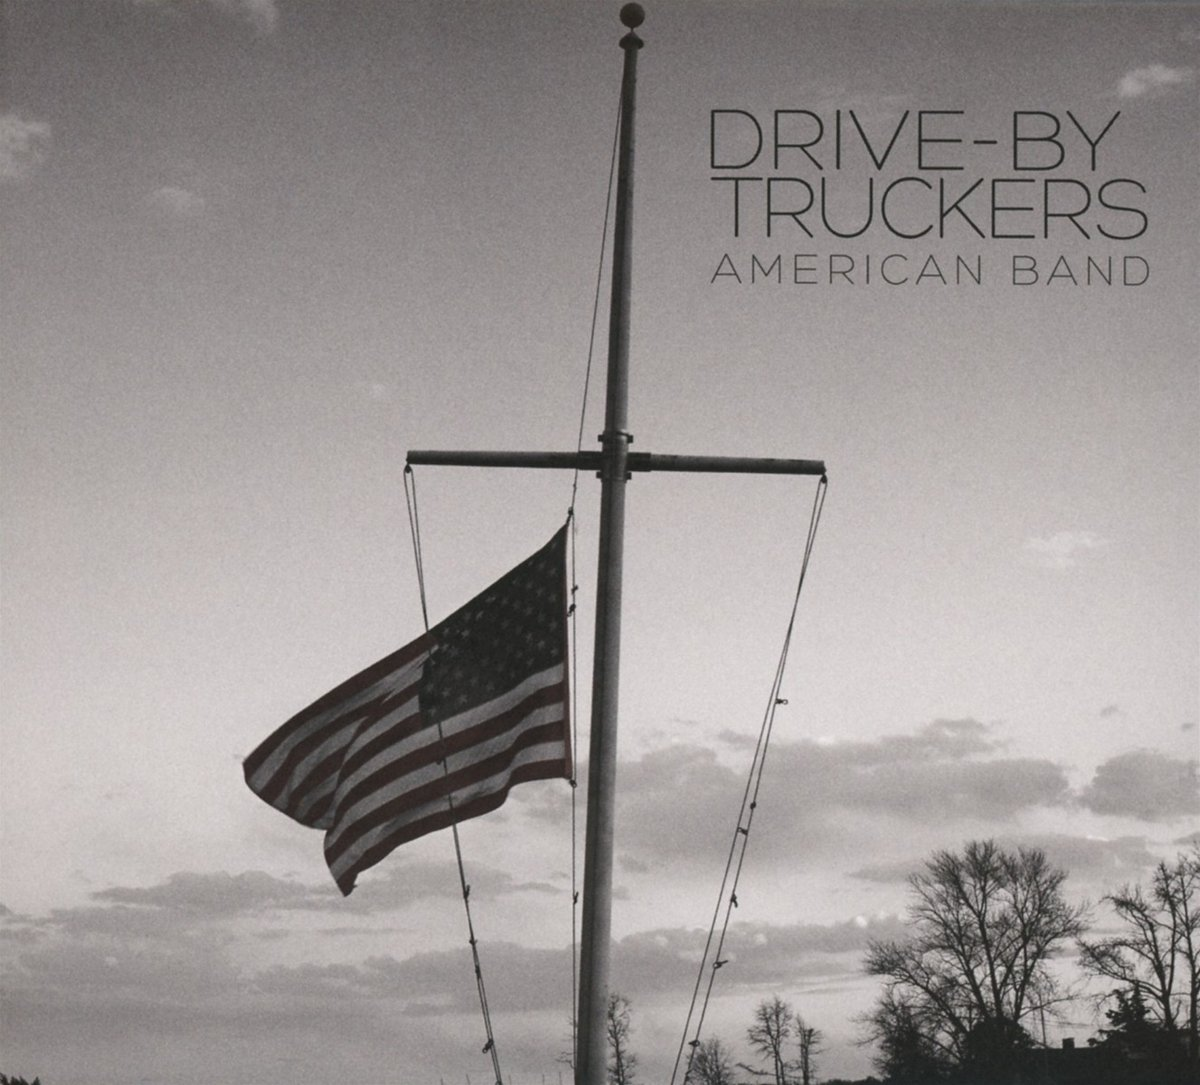 Drive-By Truckers – American Band (ATO Records)